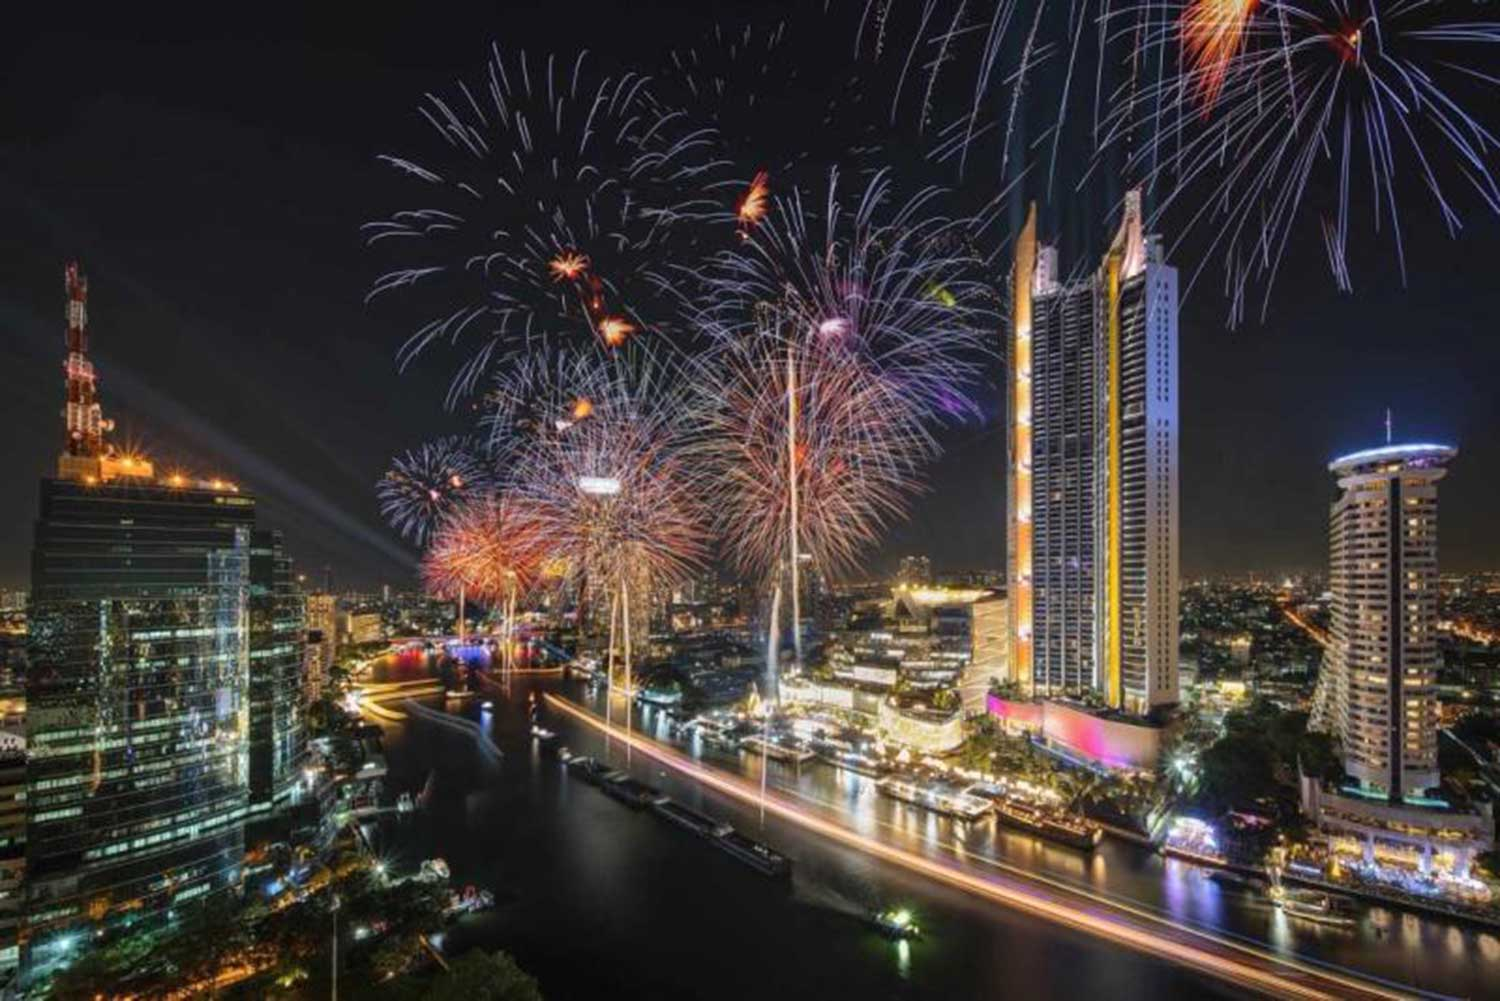 Iconsiam joins the Tourism Authority of Thailand in organising